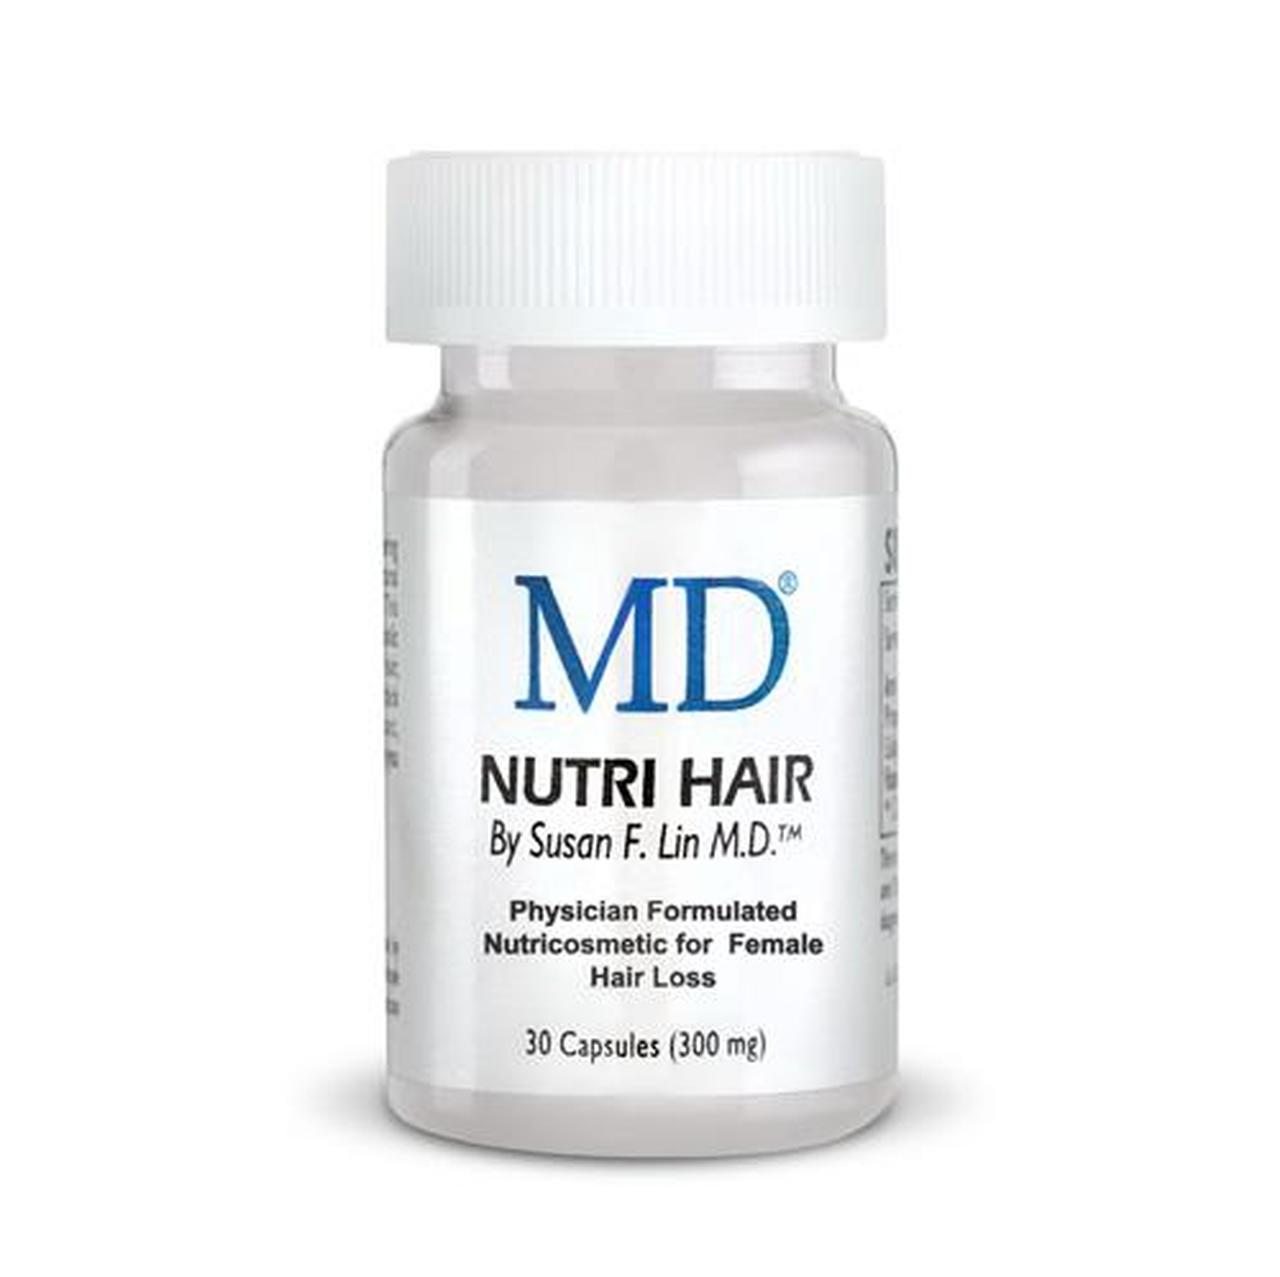 MD Nutri Hair